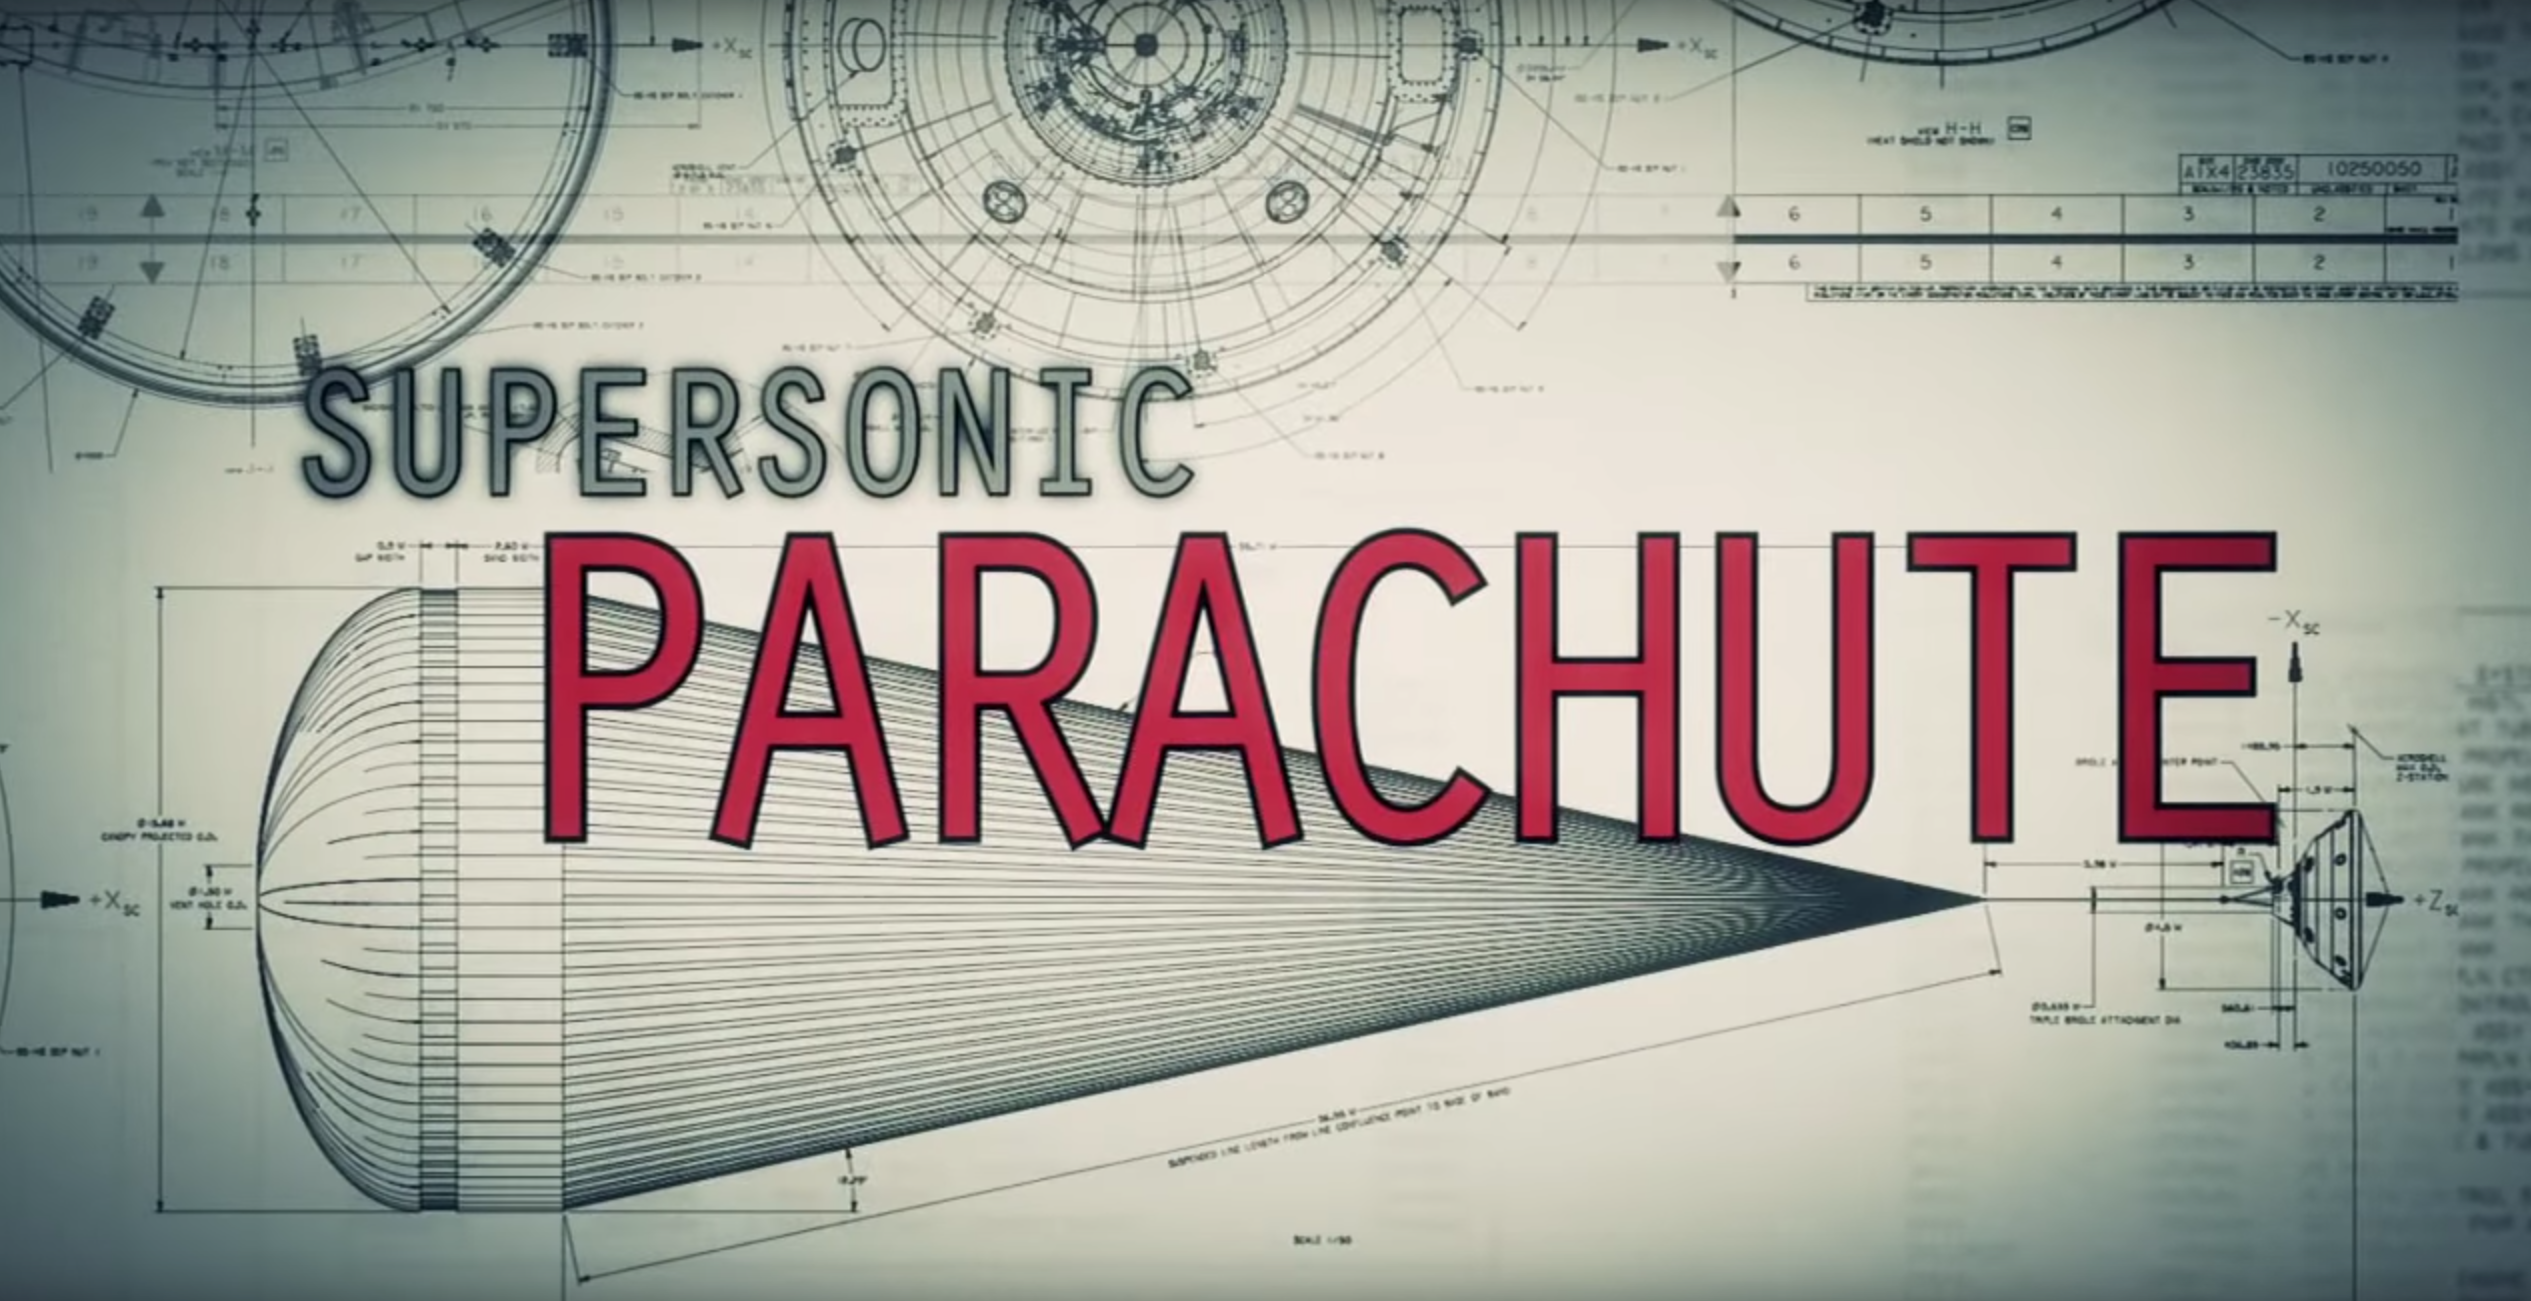 Super Sonic Parachute graphic